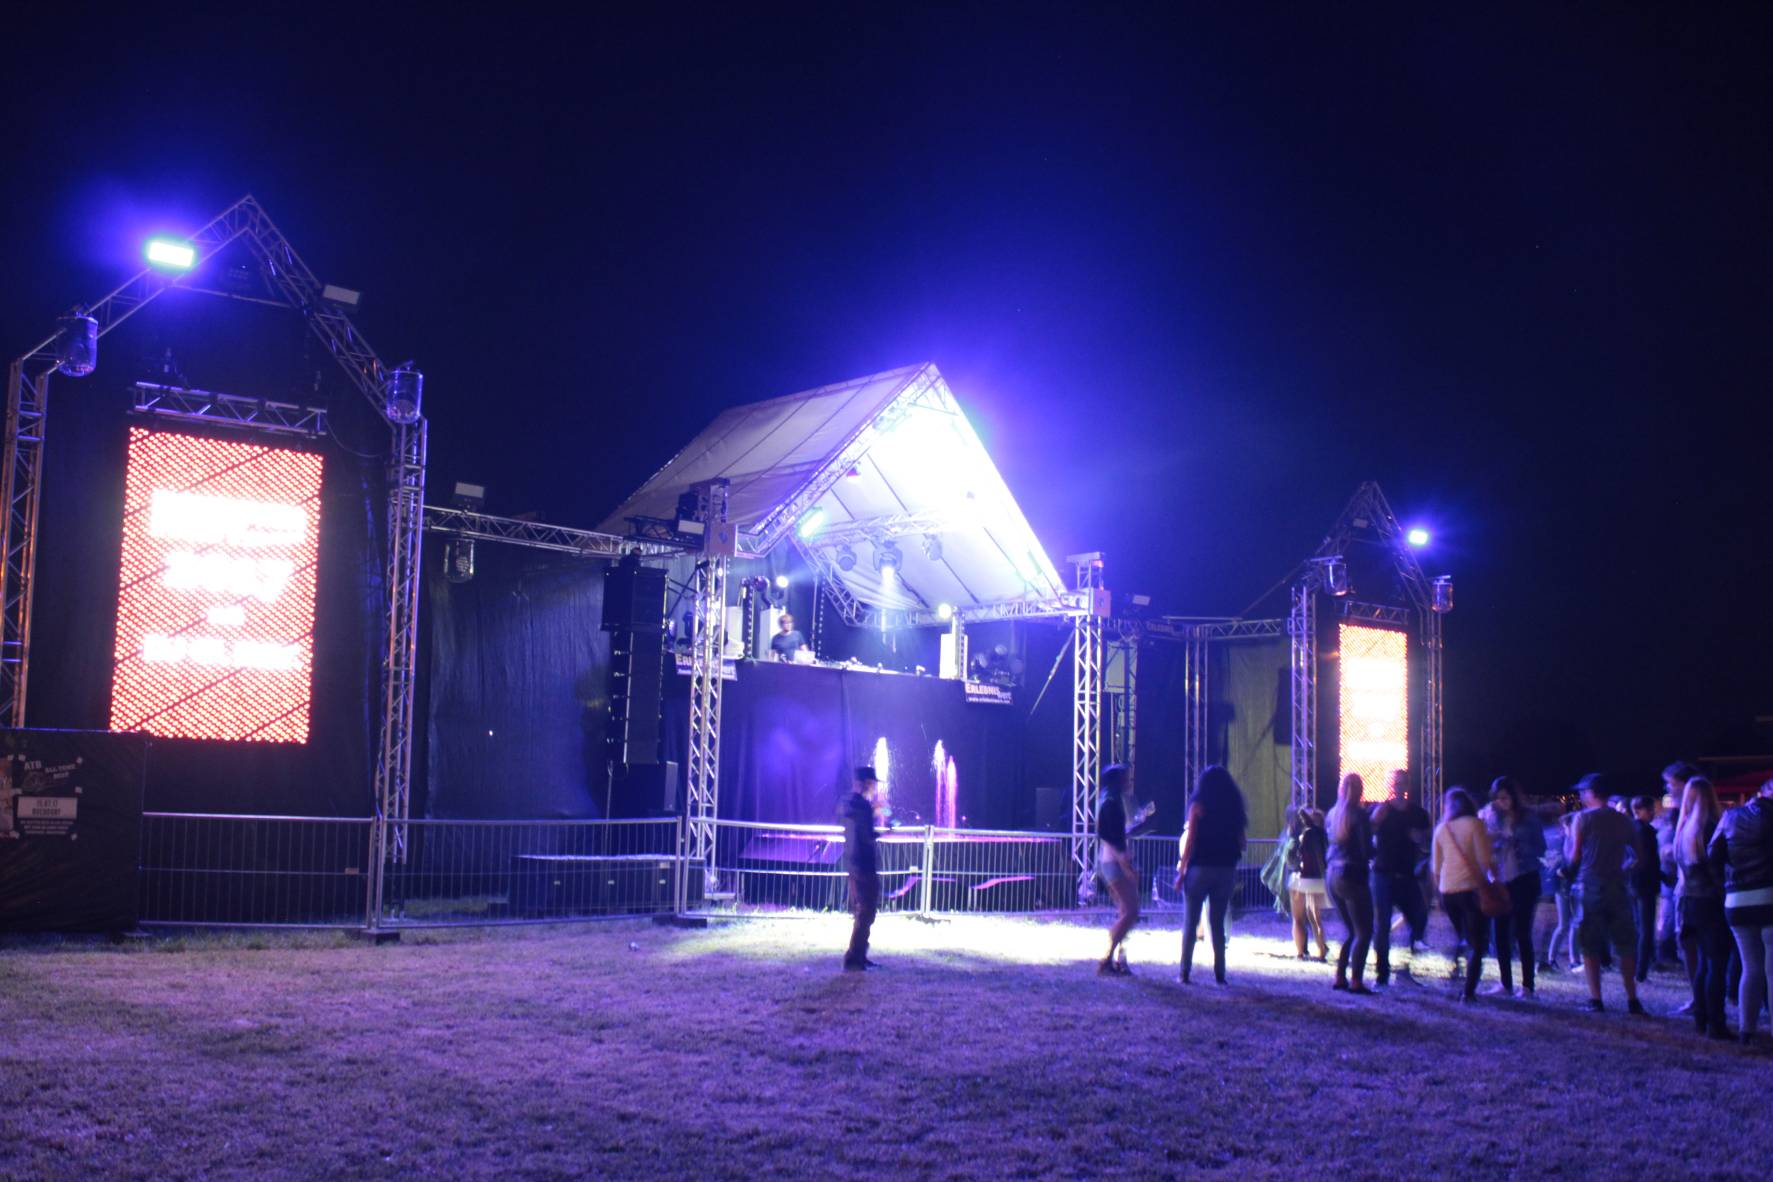 LED-Wand; Lightshow; Wassershow; Donauwörth; Festivalbühne; Open-Air